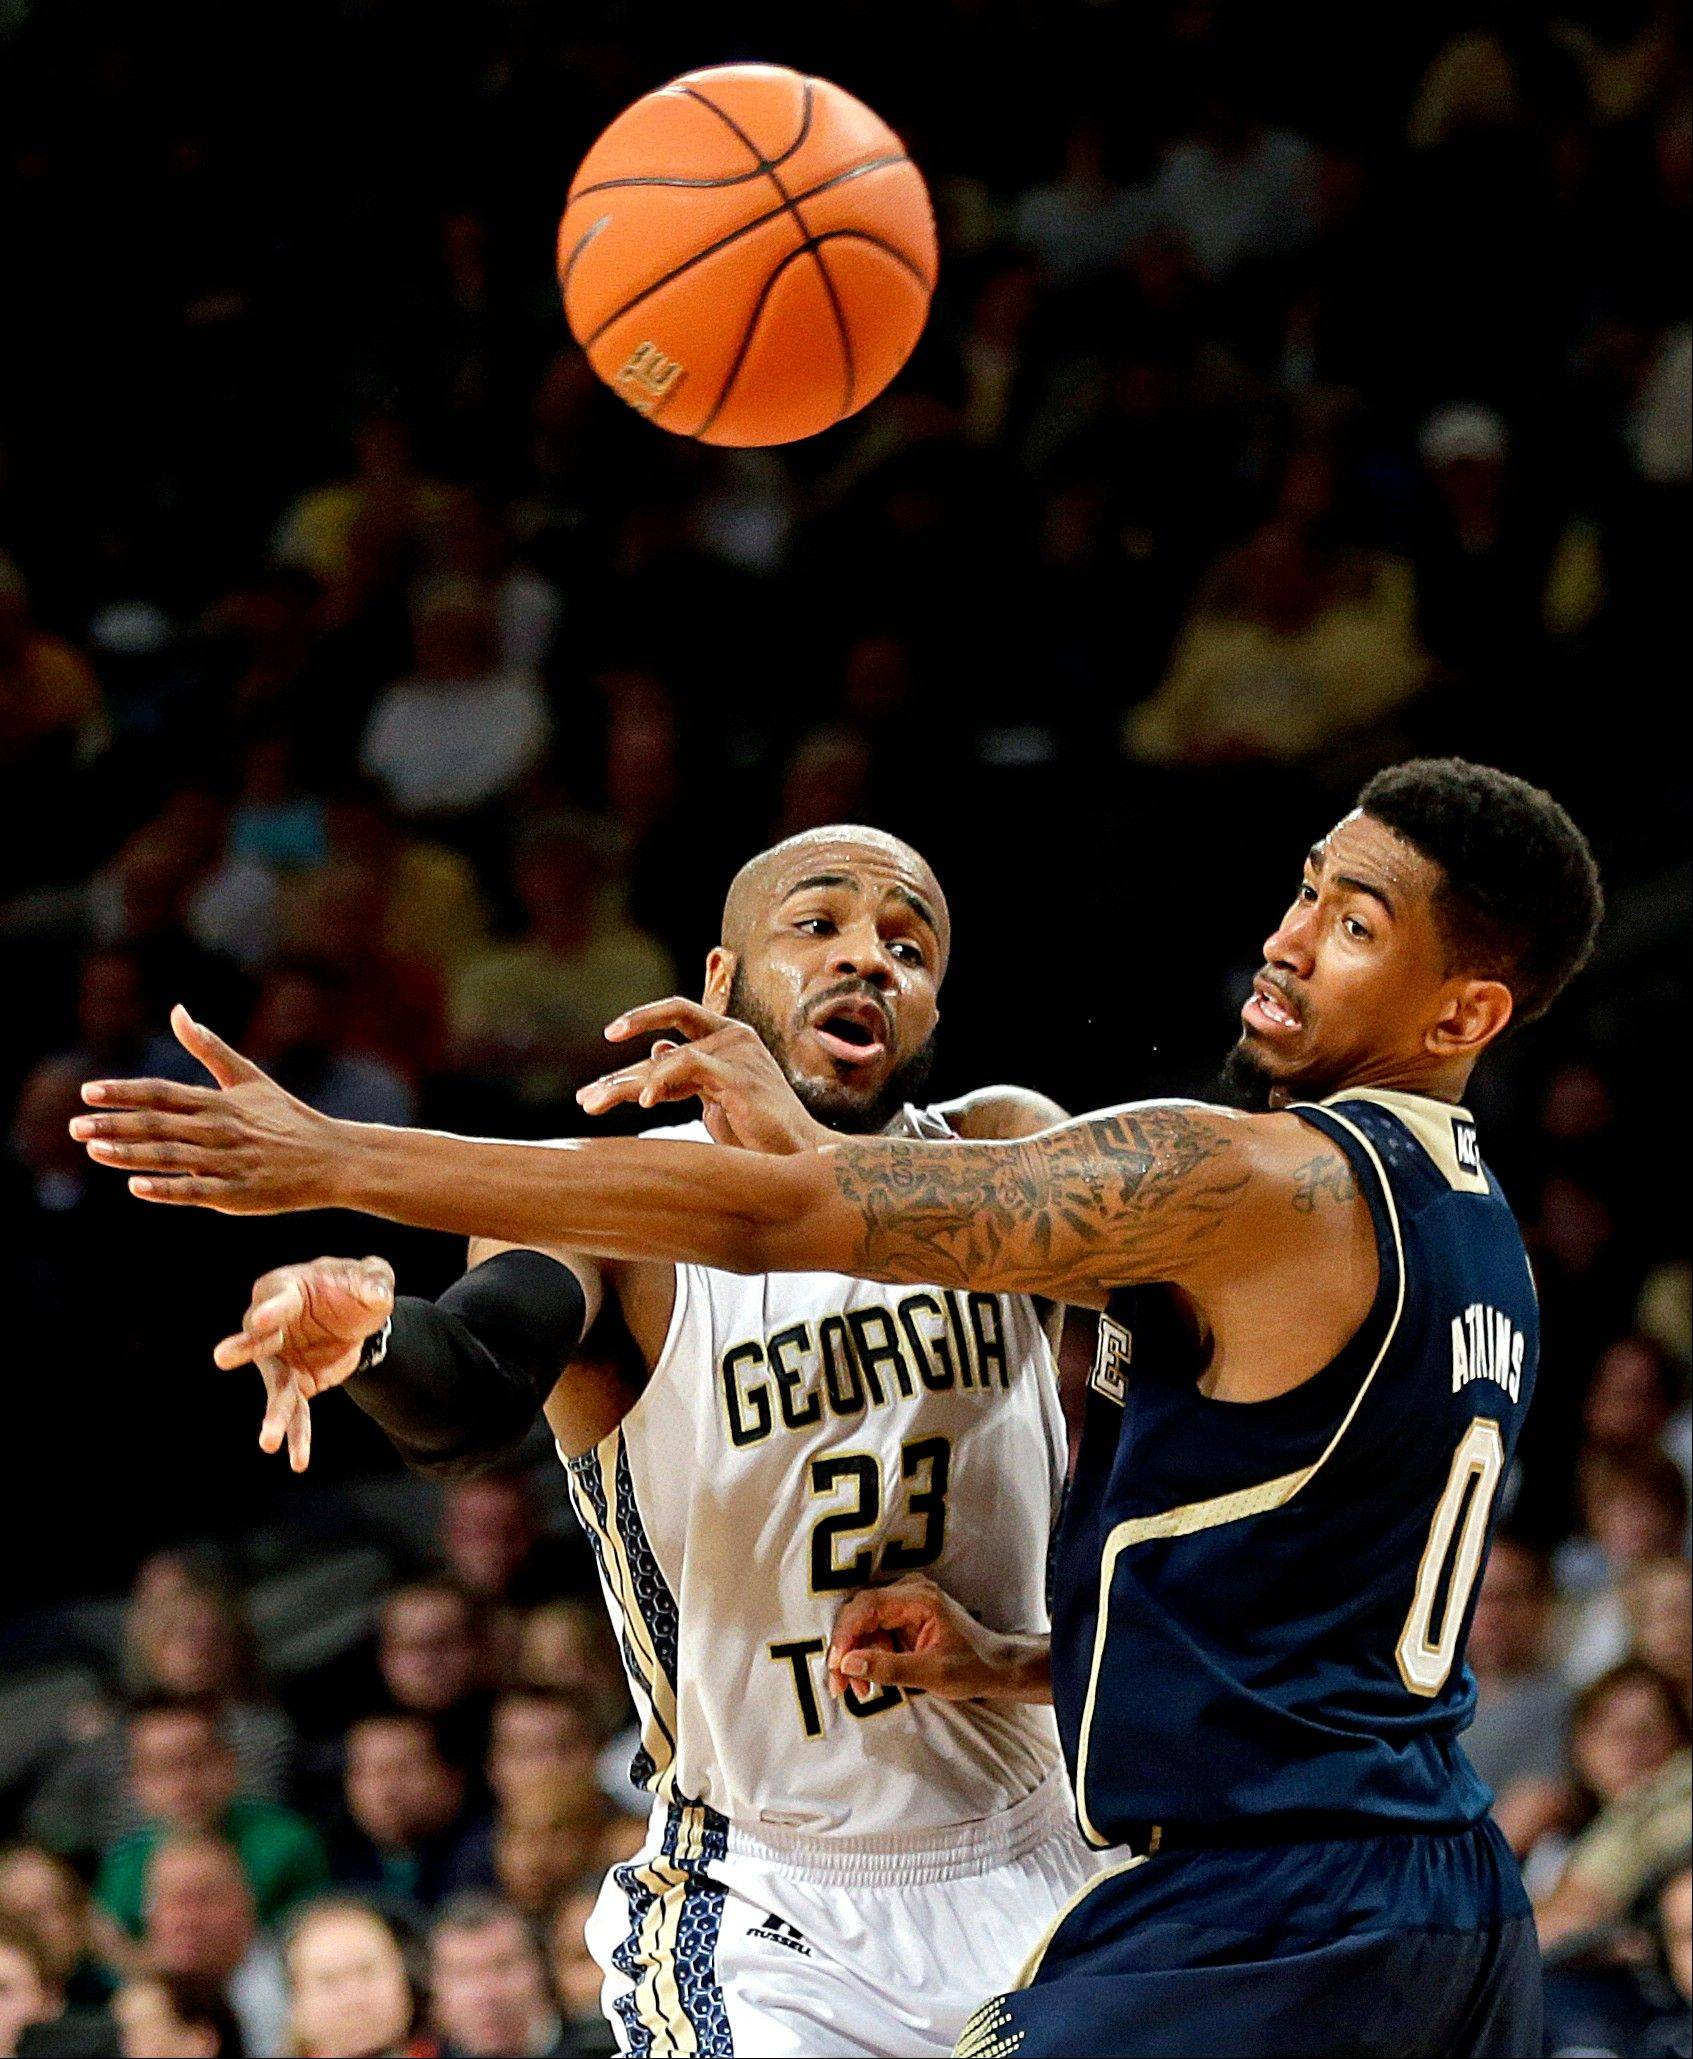 Georgia Tech's Trae Golden, left, passes the ball against the defense of Notre Dame's Eric Atkins in the second half of an NCAA college basketball game, Saturday, Jan. 11, 2014, in Atlanta. Georgia Tech won 74-69.